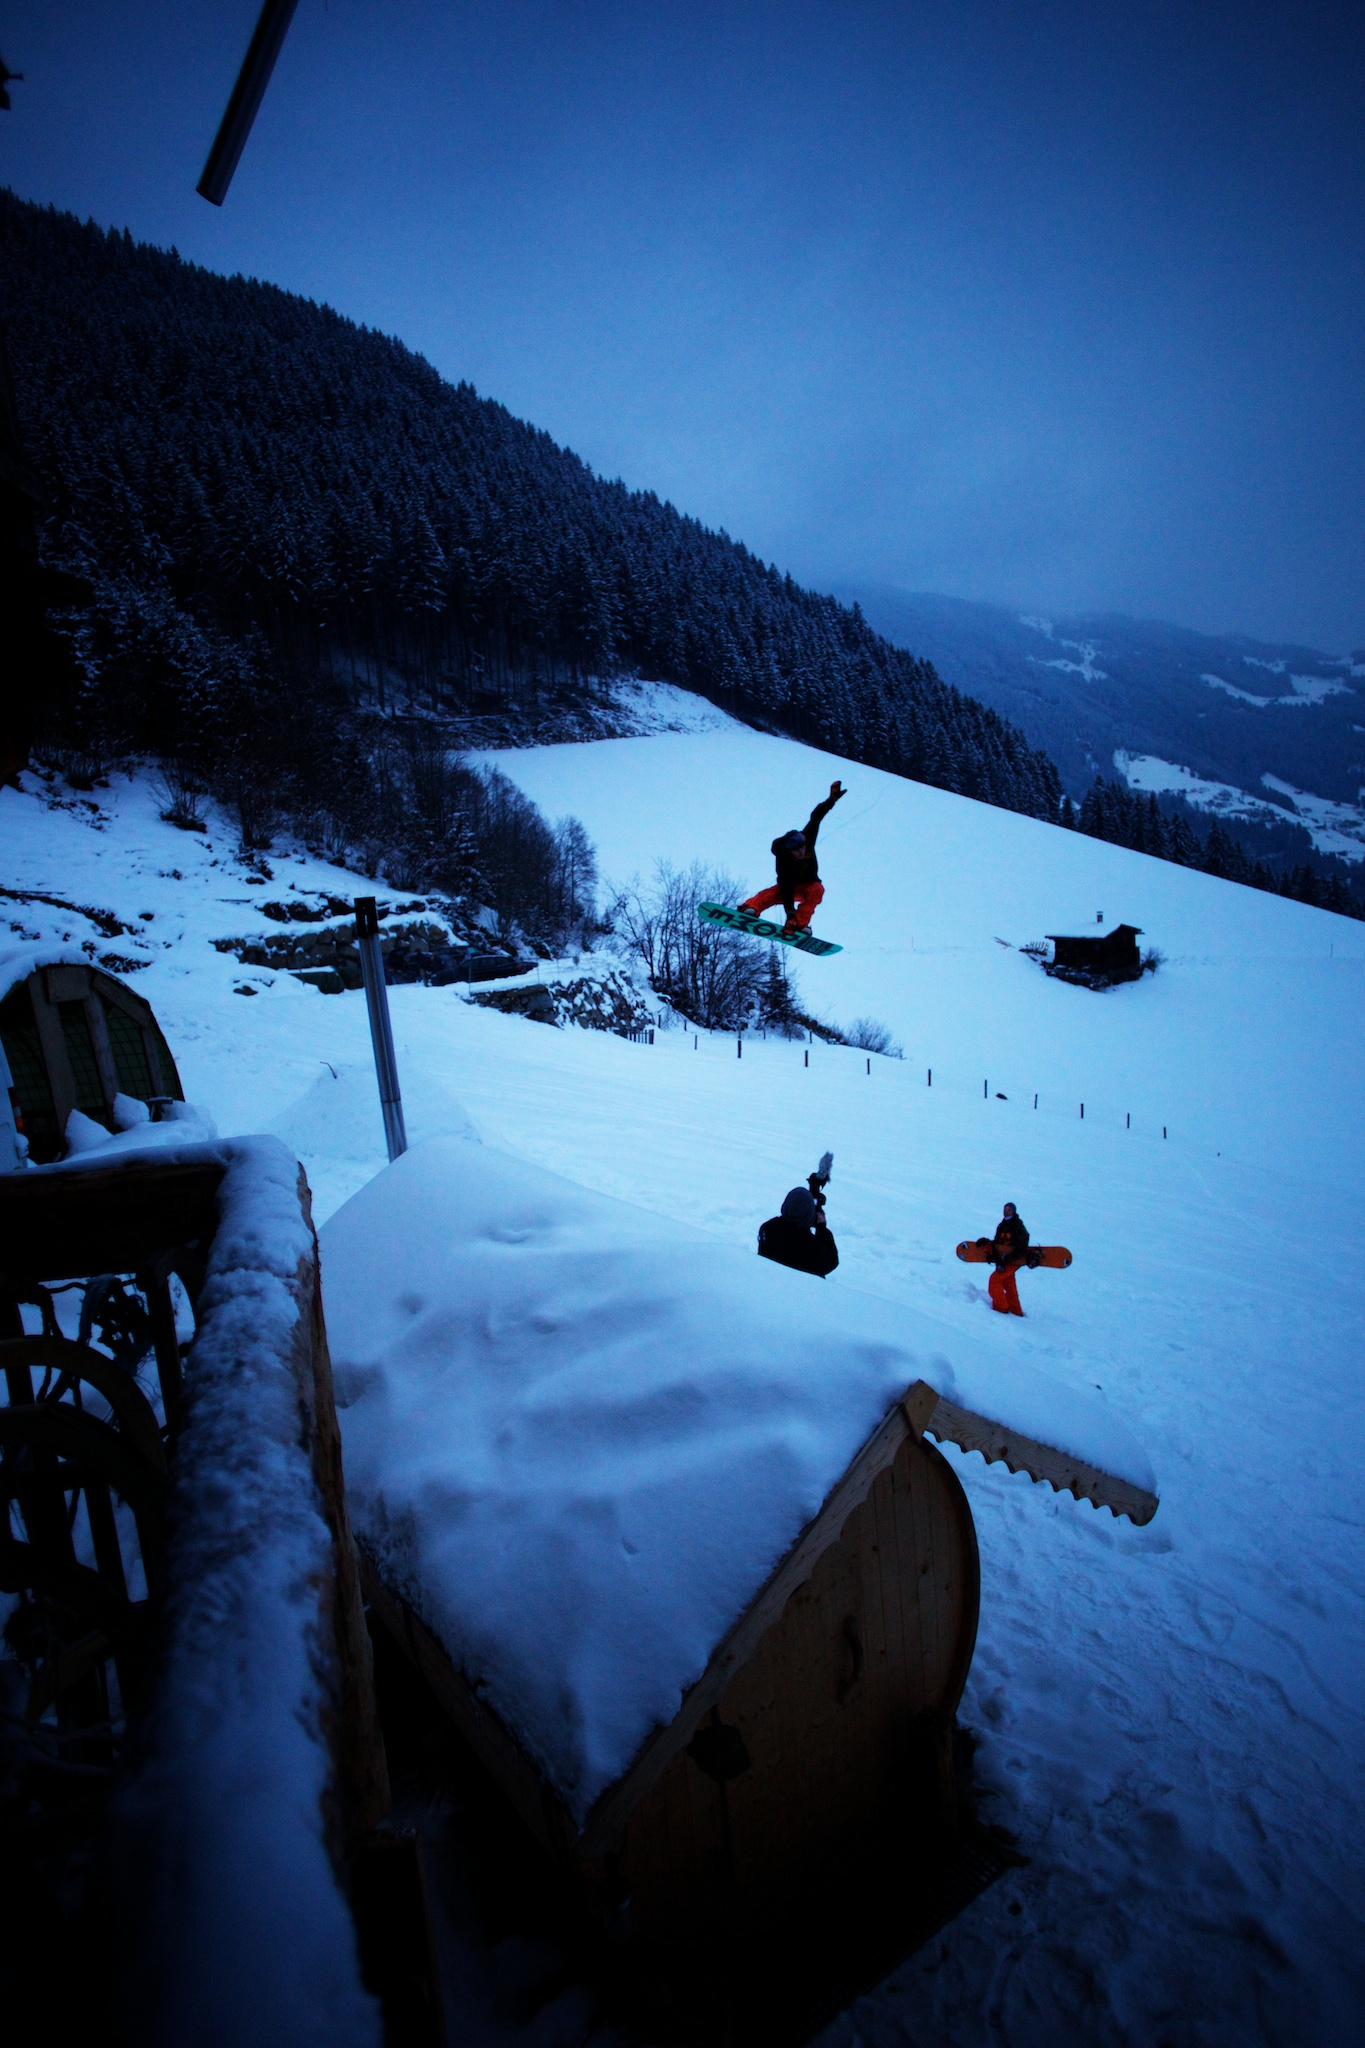 Jordan Phillips indy tail bone. Zillertal, Austria.